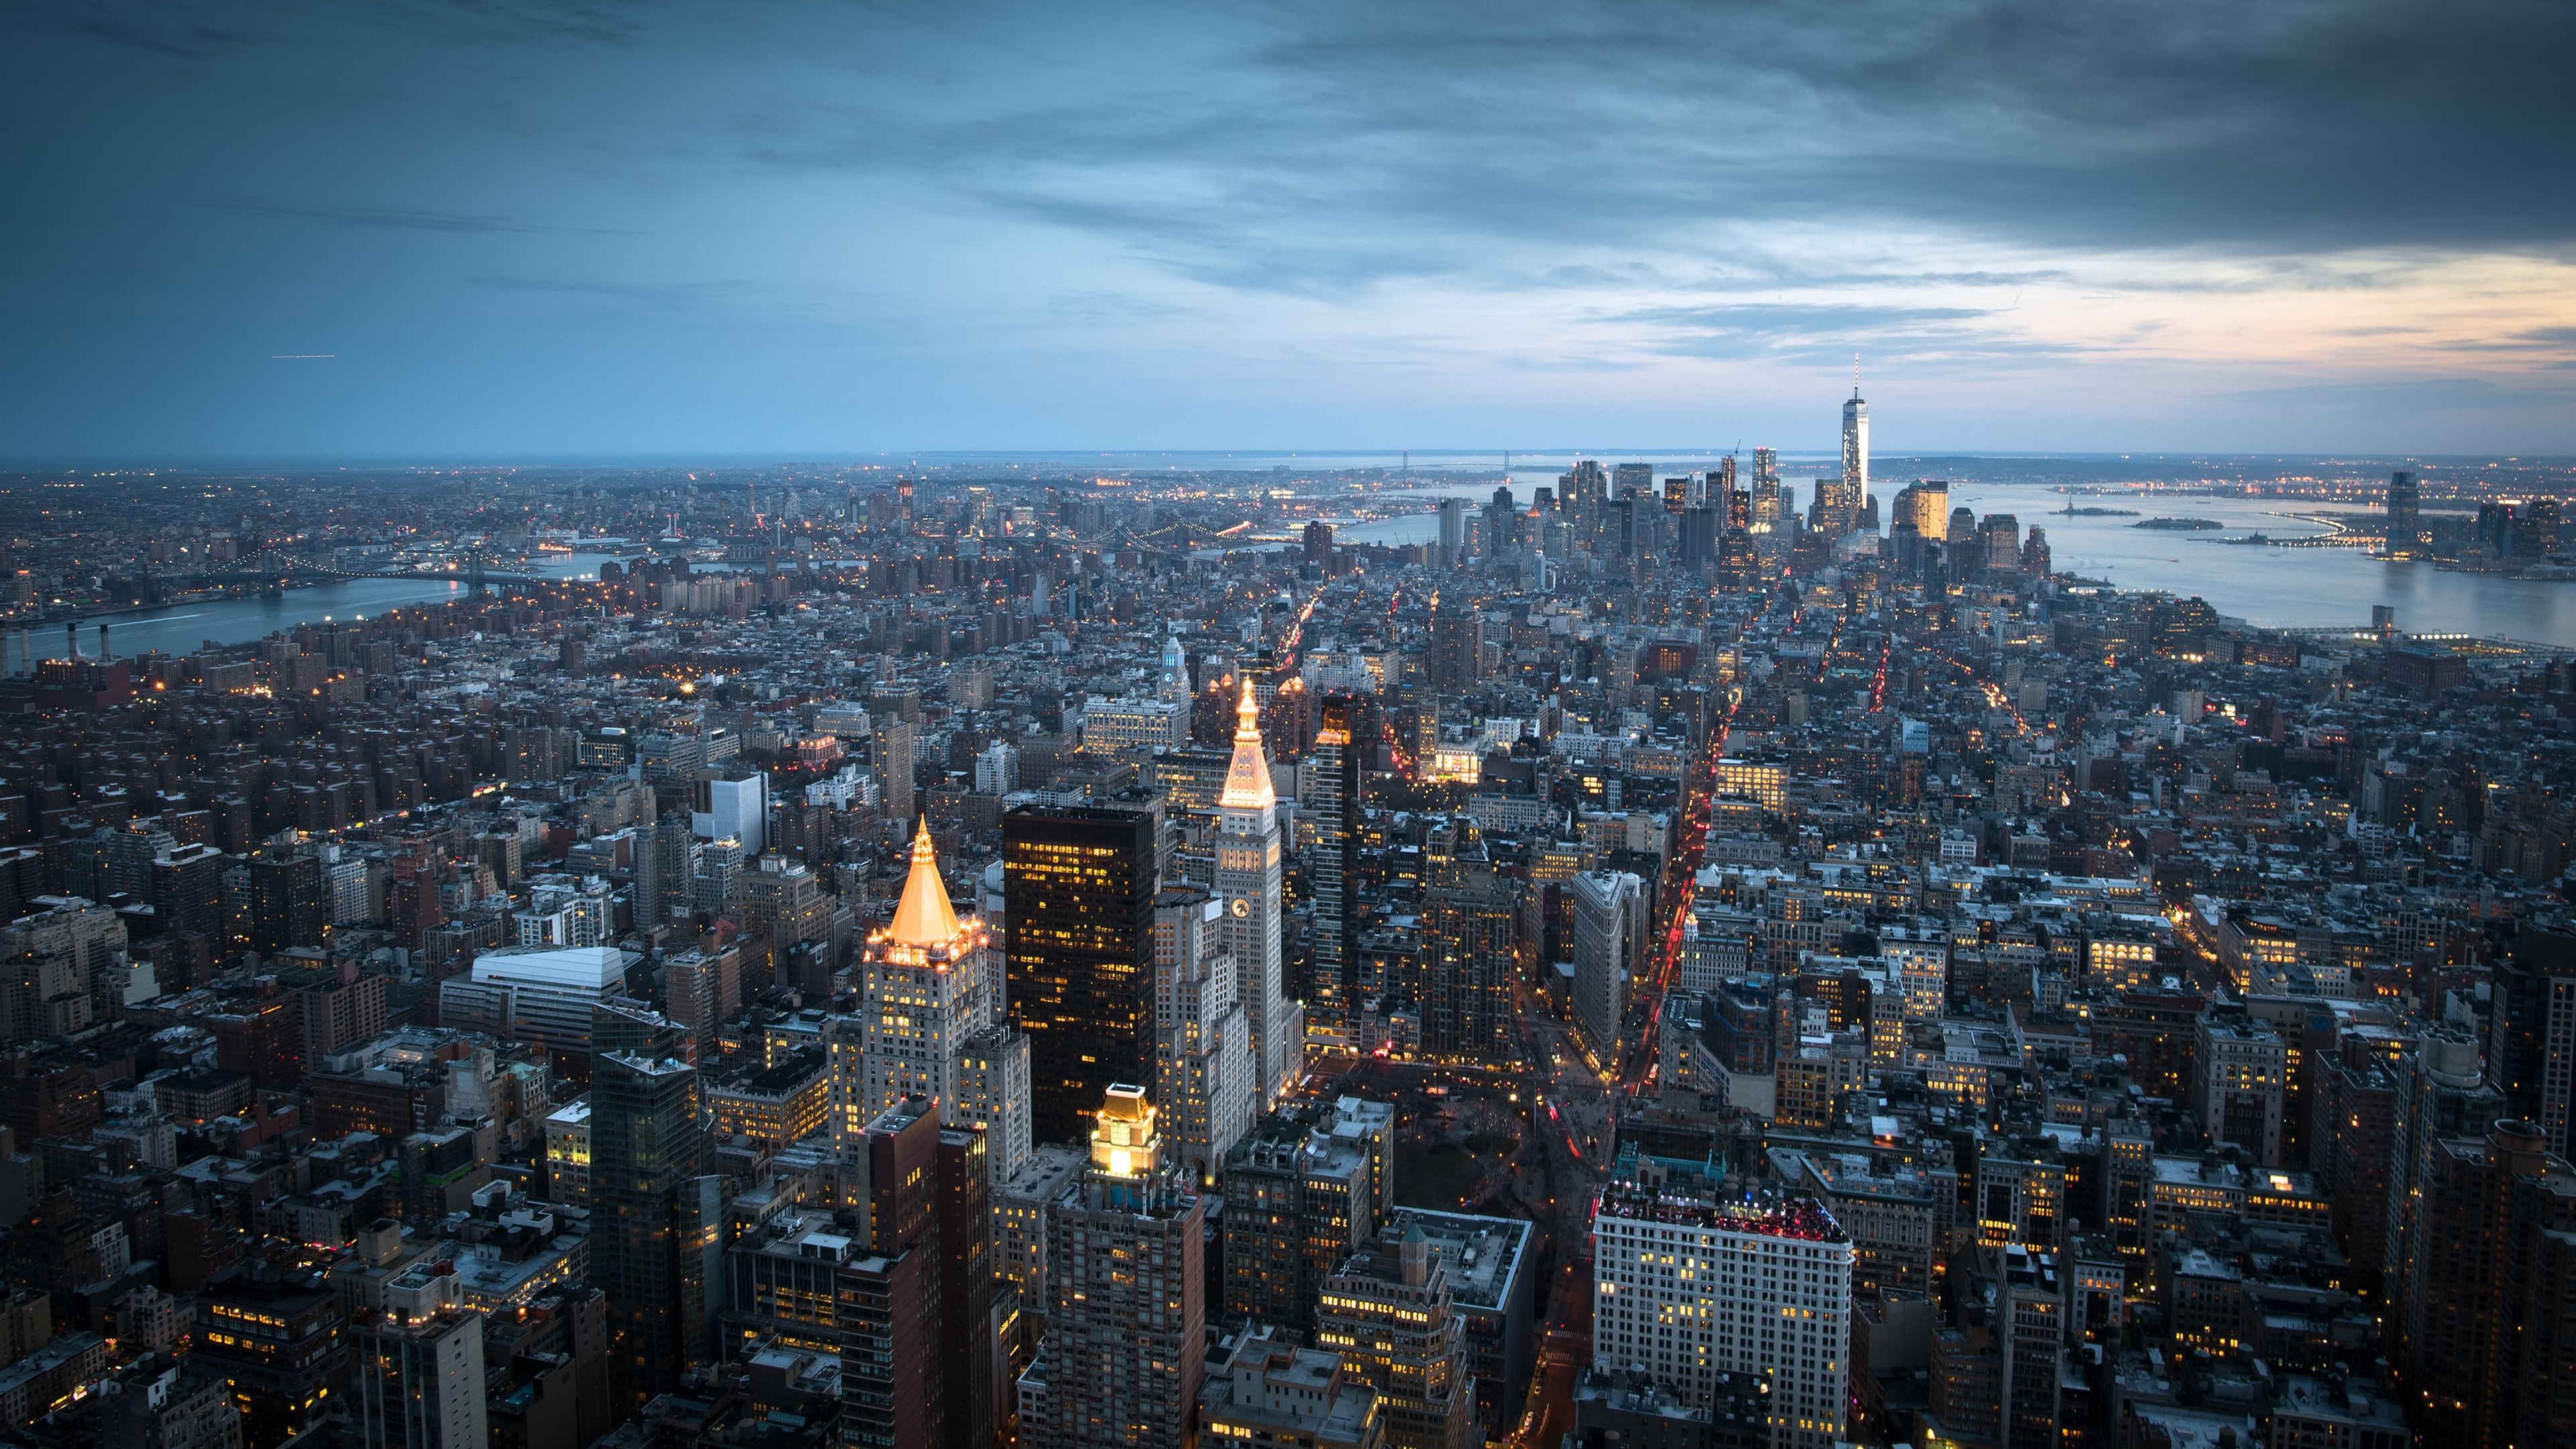 Top view over Manhattan from Empire State wallpaper 3840x2160